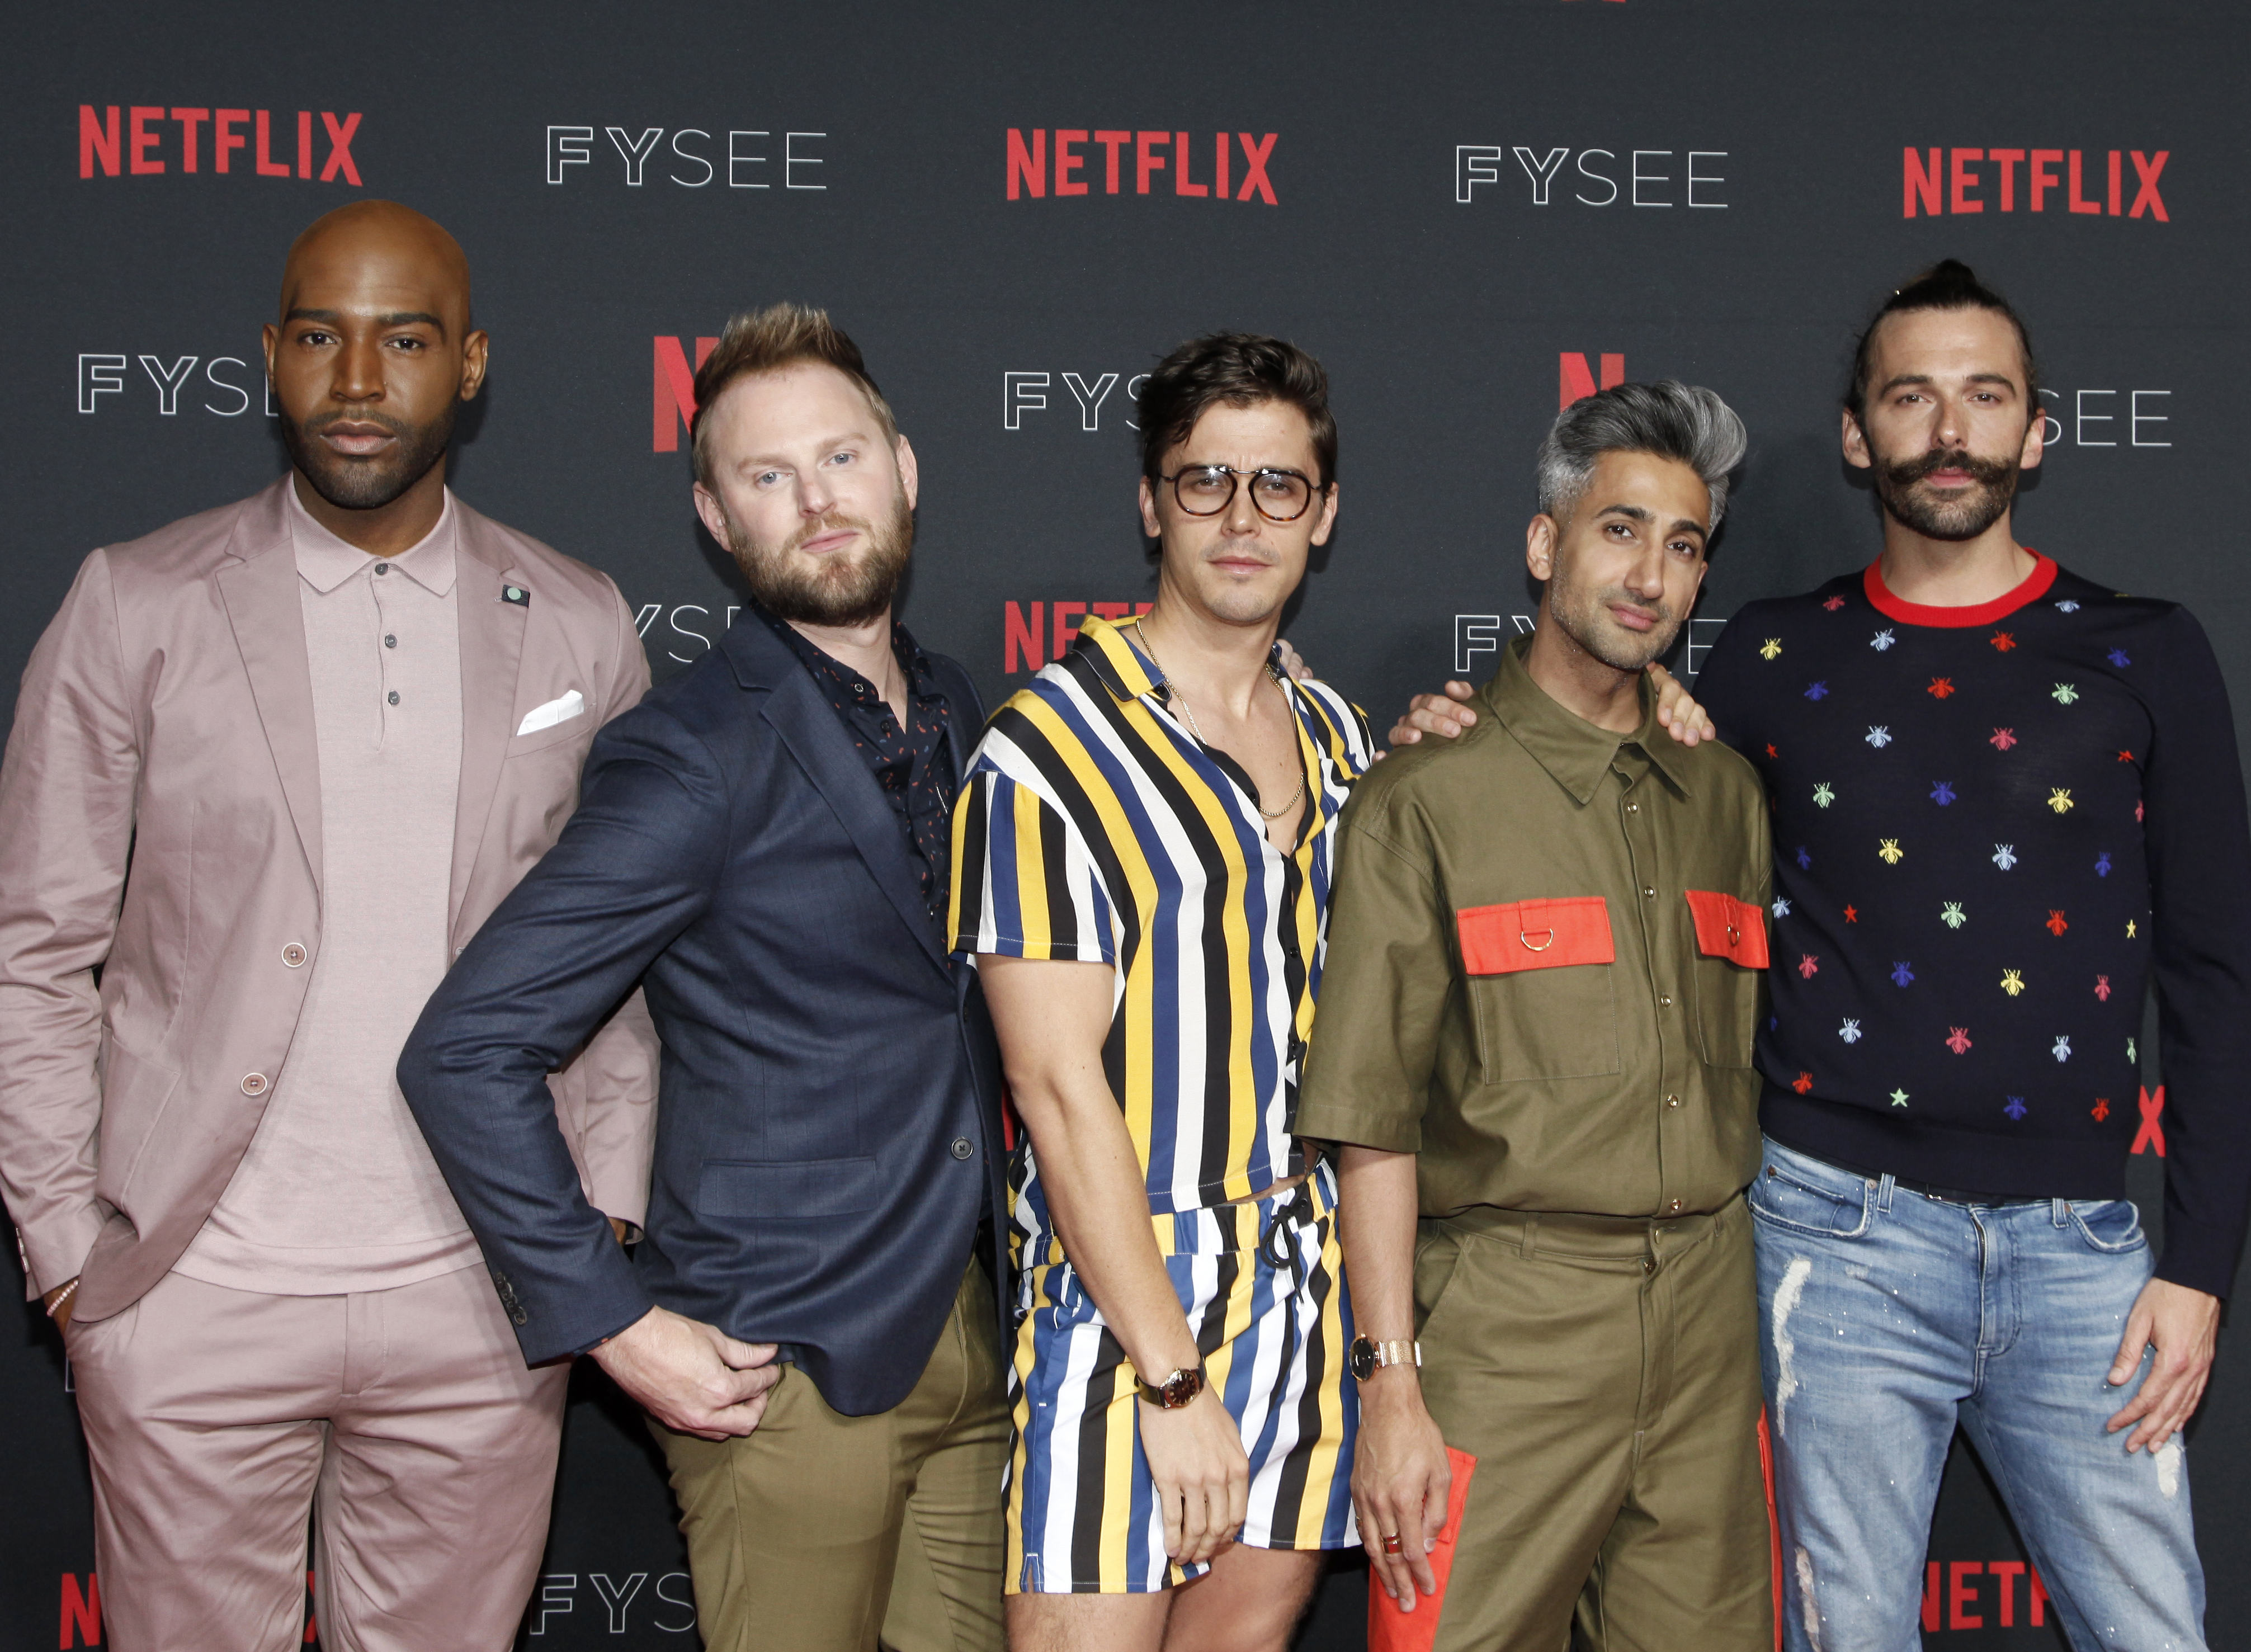 Bow down to this royalty: the <em>Queer Eye</em> guys were just *officially* crowned Yass Queens